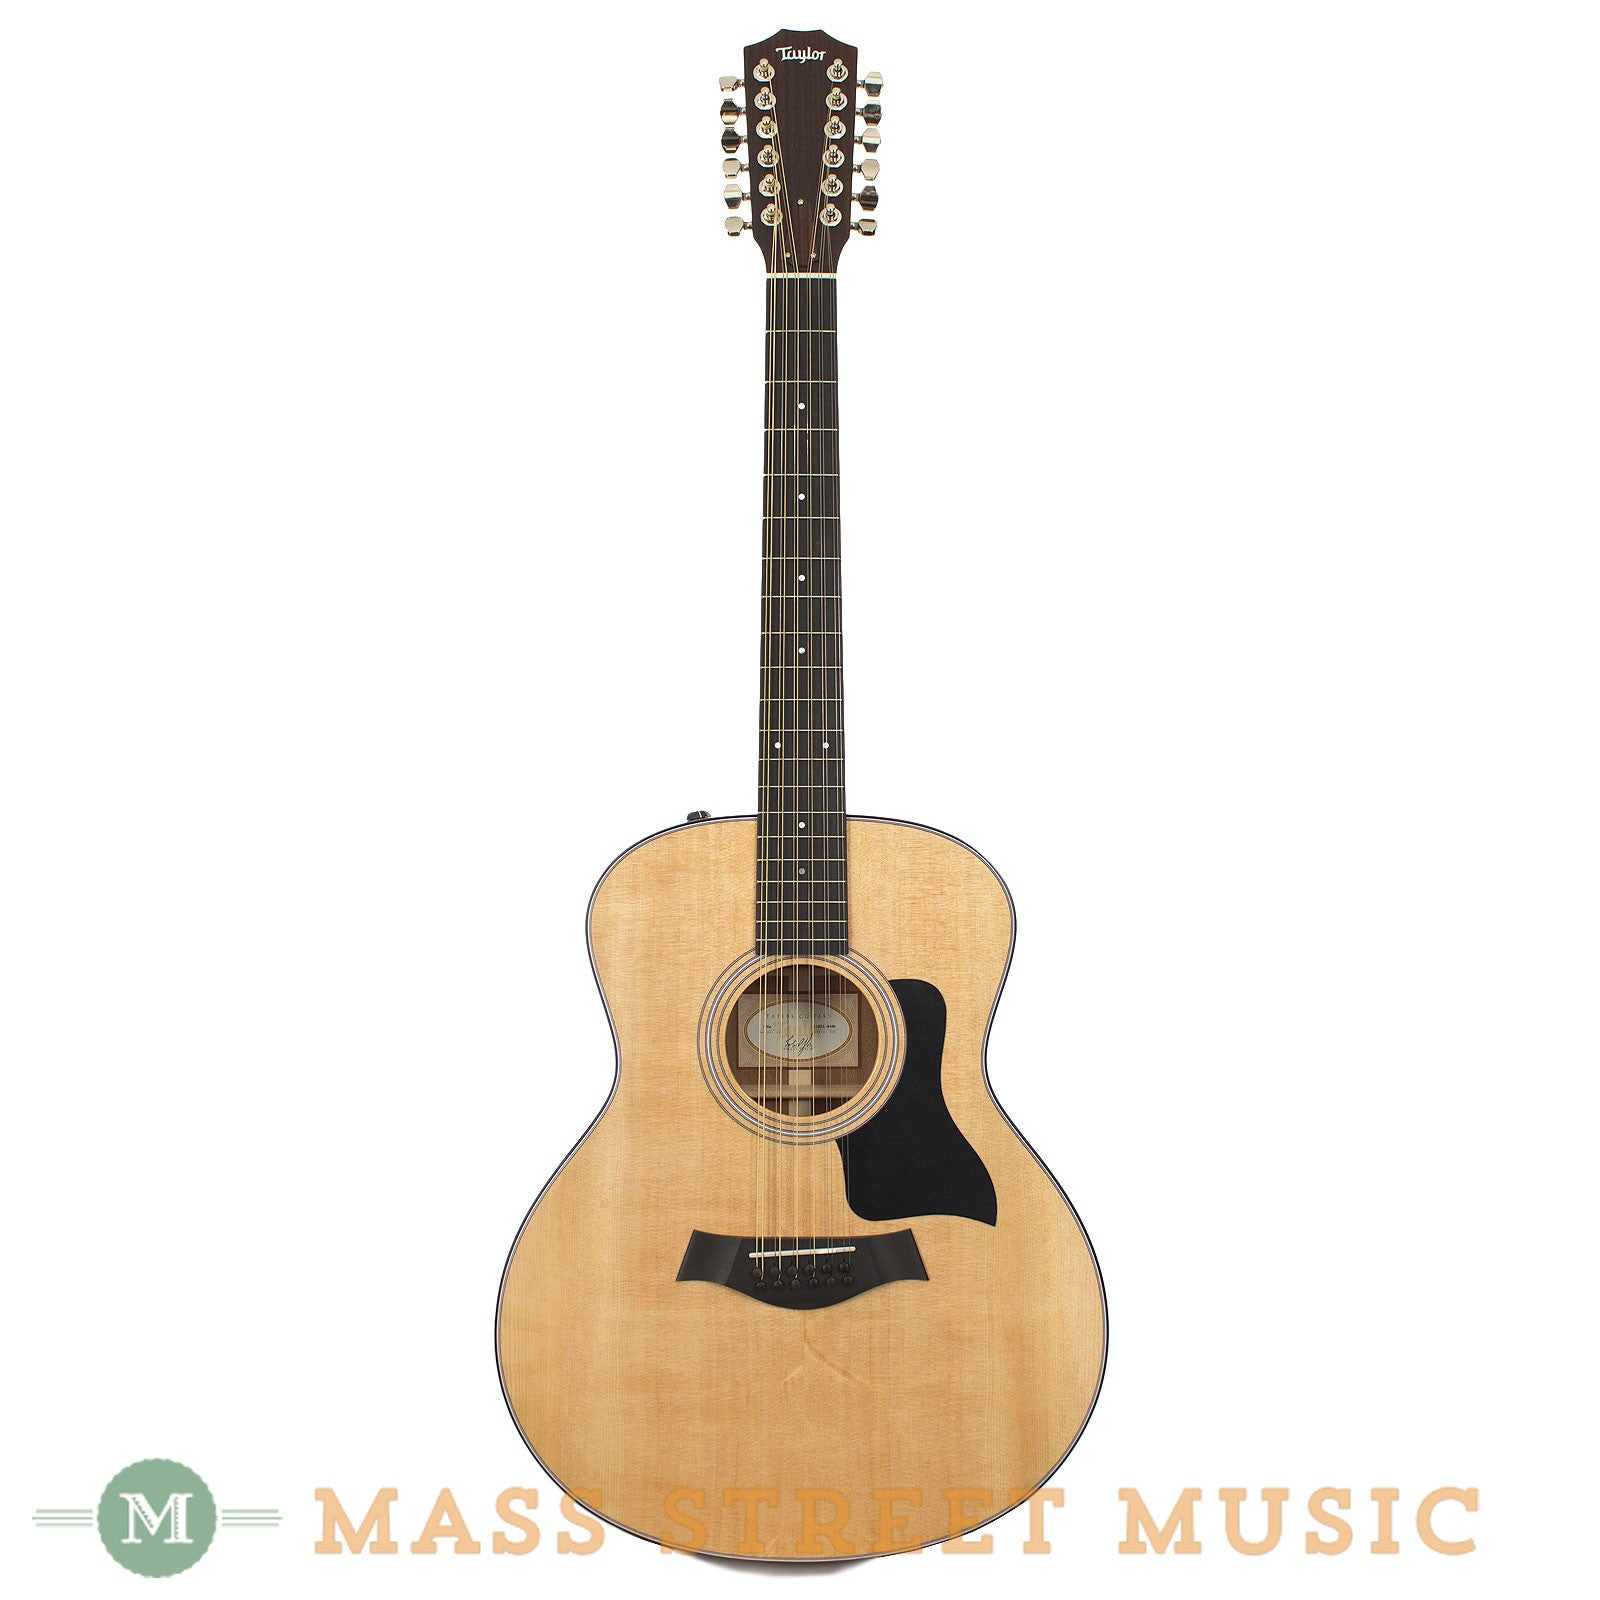 taylor 356e 12 string acoustic guitar with expression system 1 mass street music store. Black Bedroom Furniture Sets. Home Design Ideas